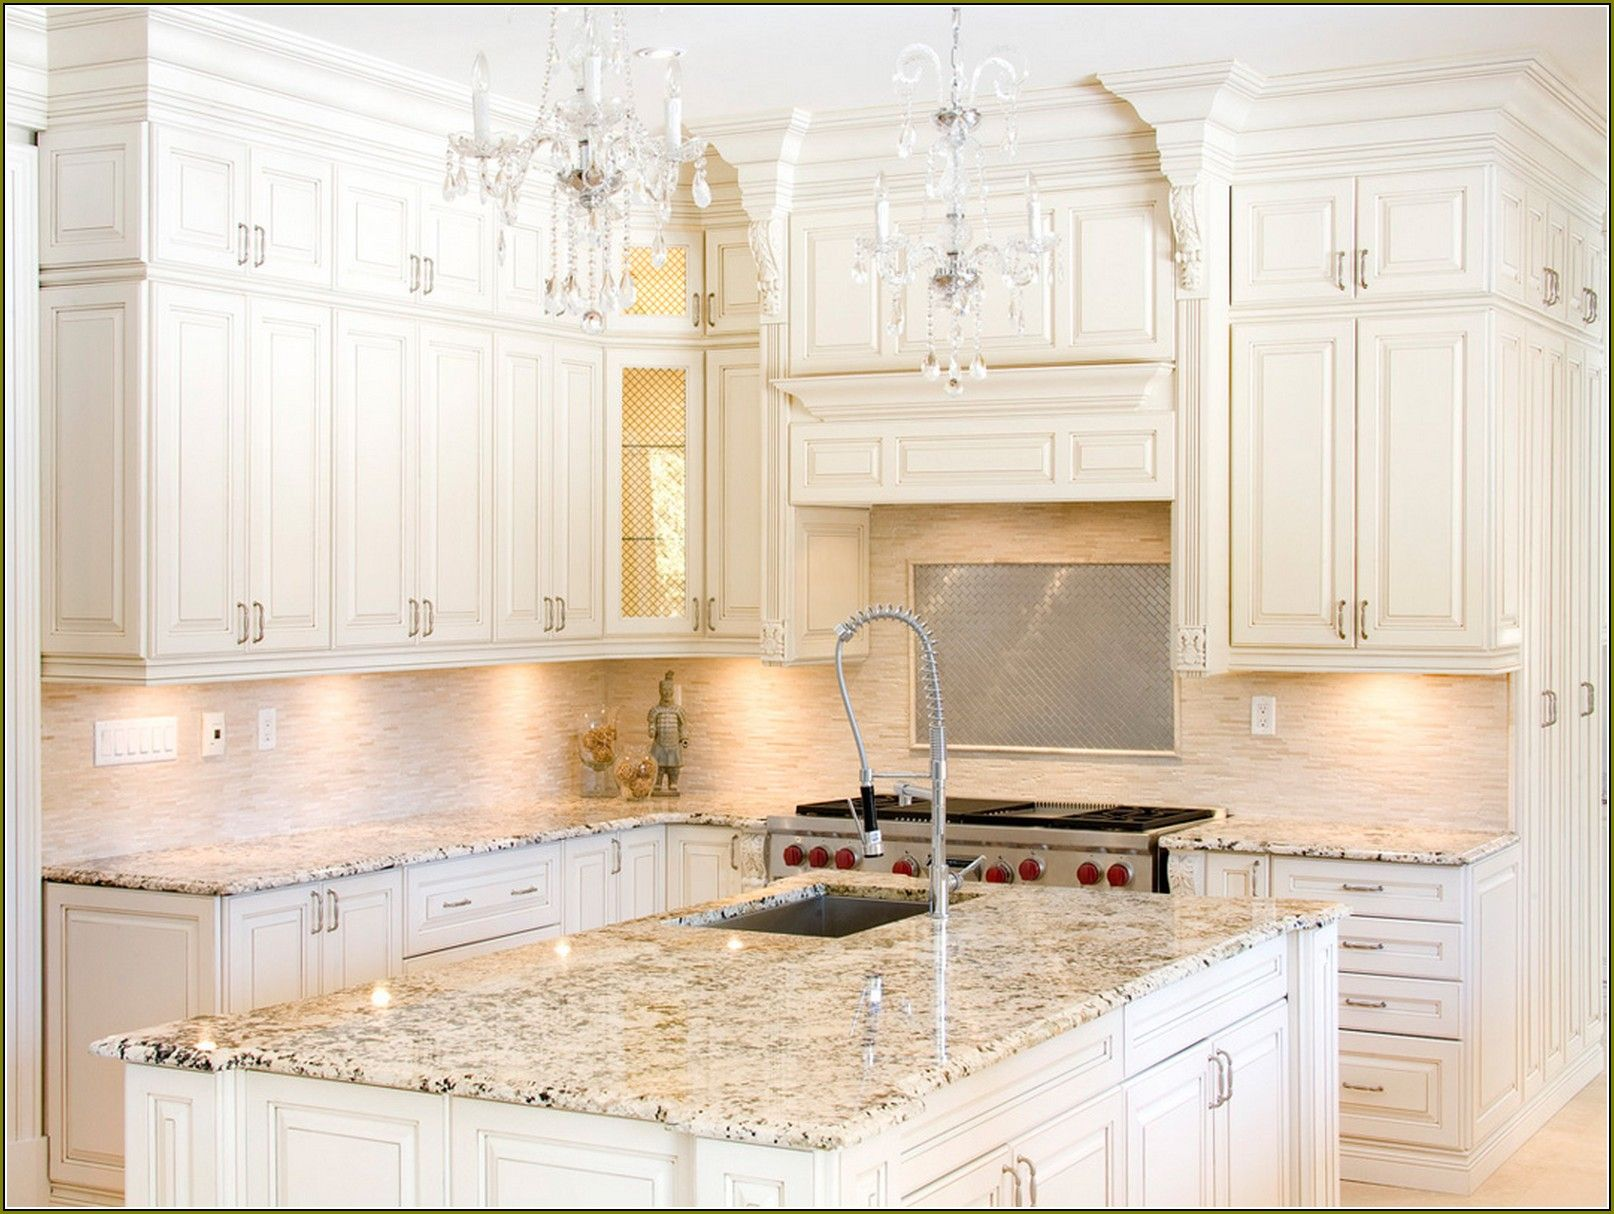 White Kitchens With Granite Countertops Off White Kitchen Cabinets With Granite Countertops Things To